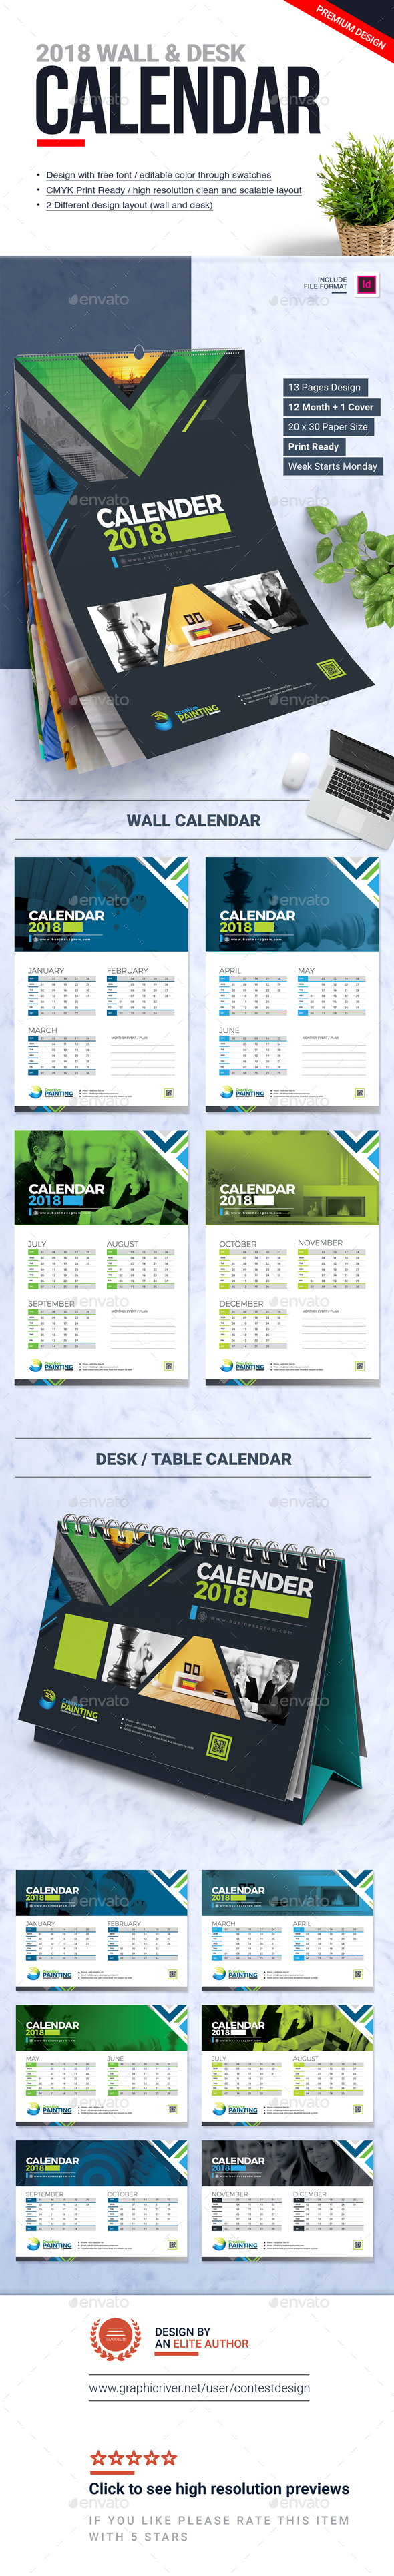 GraphicRiver 2018 Wall and Desk Calendar Design Template 20952861